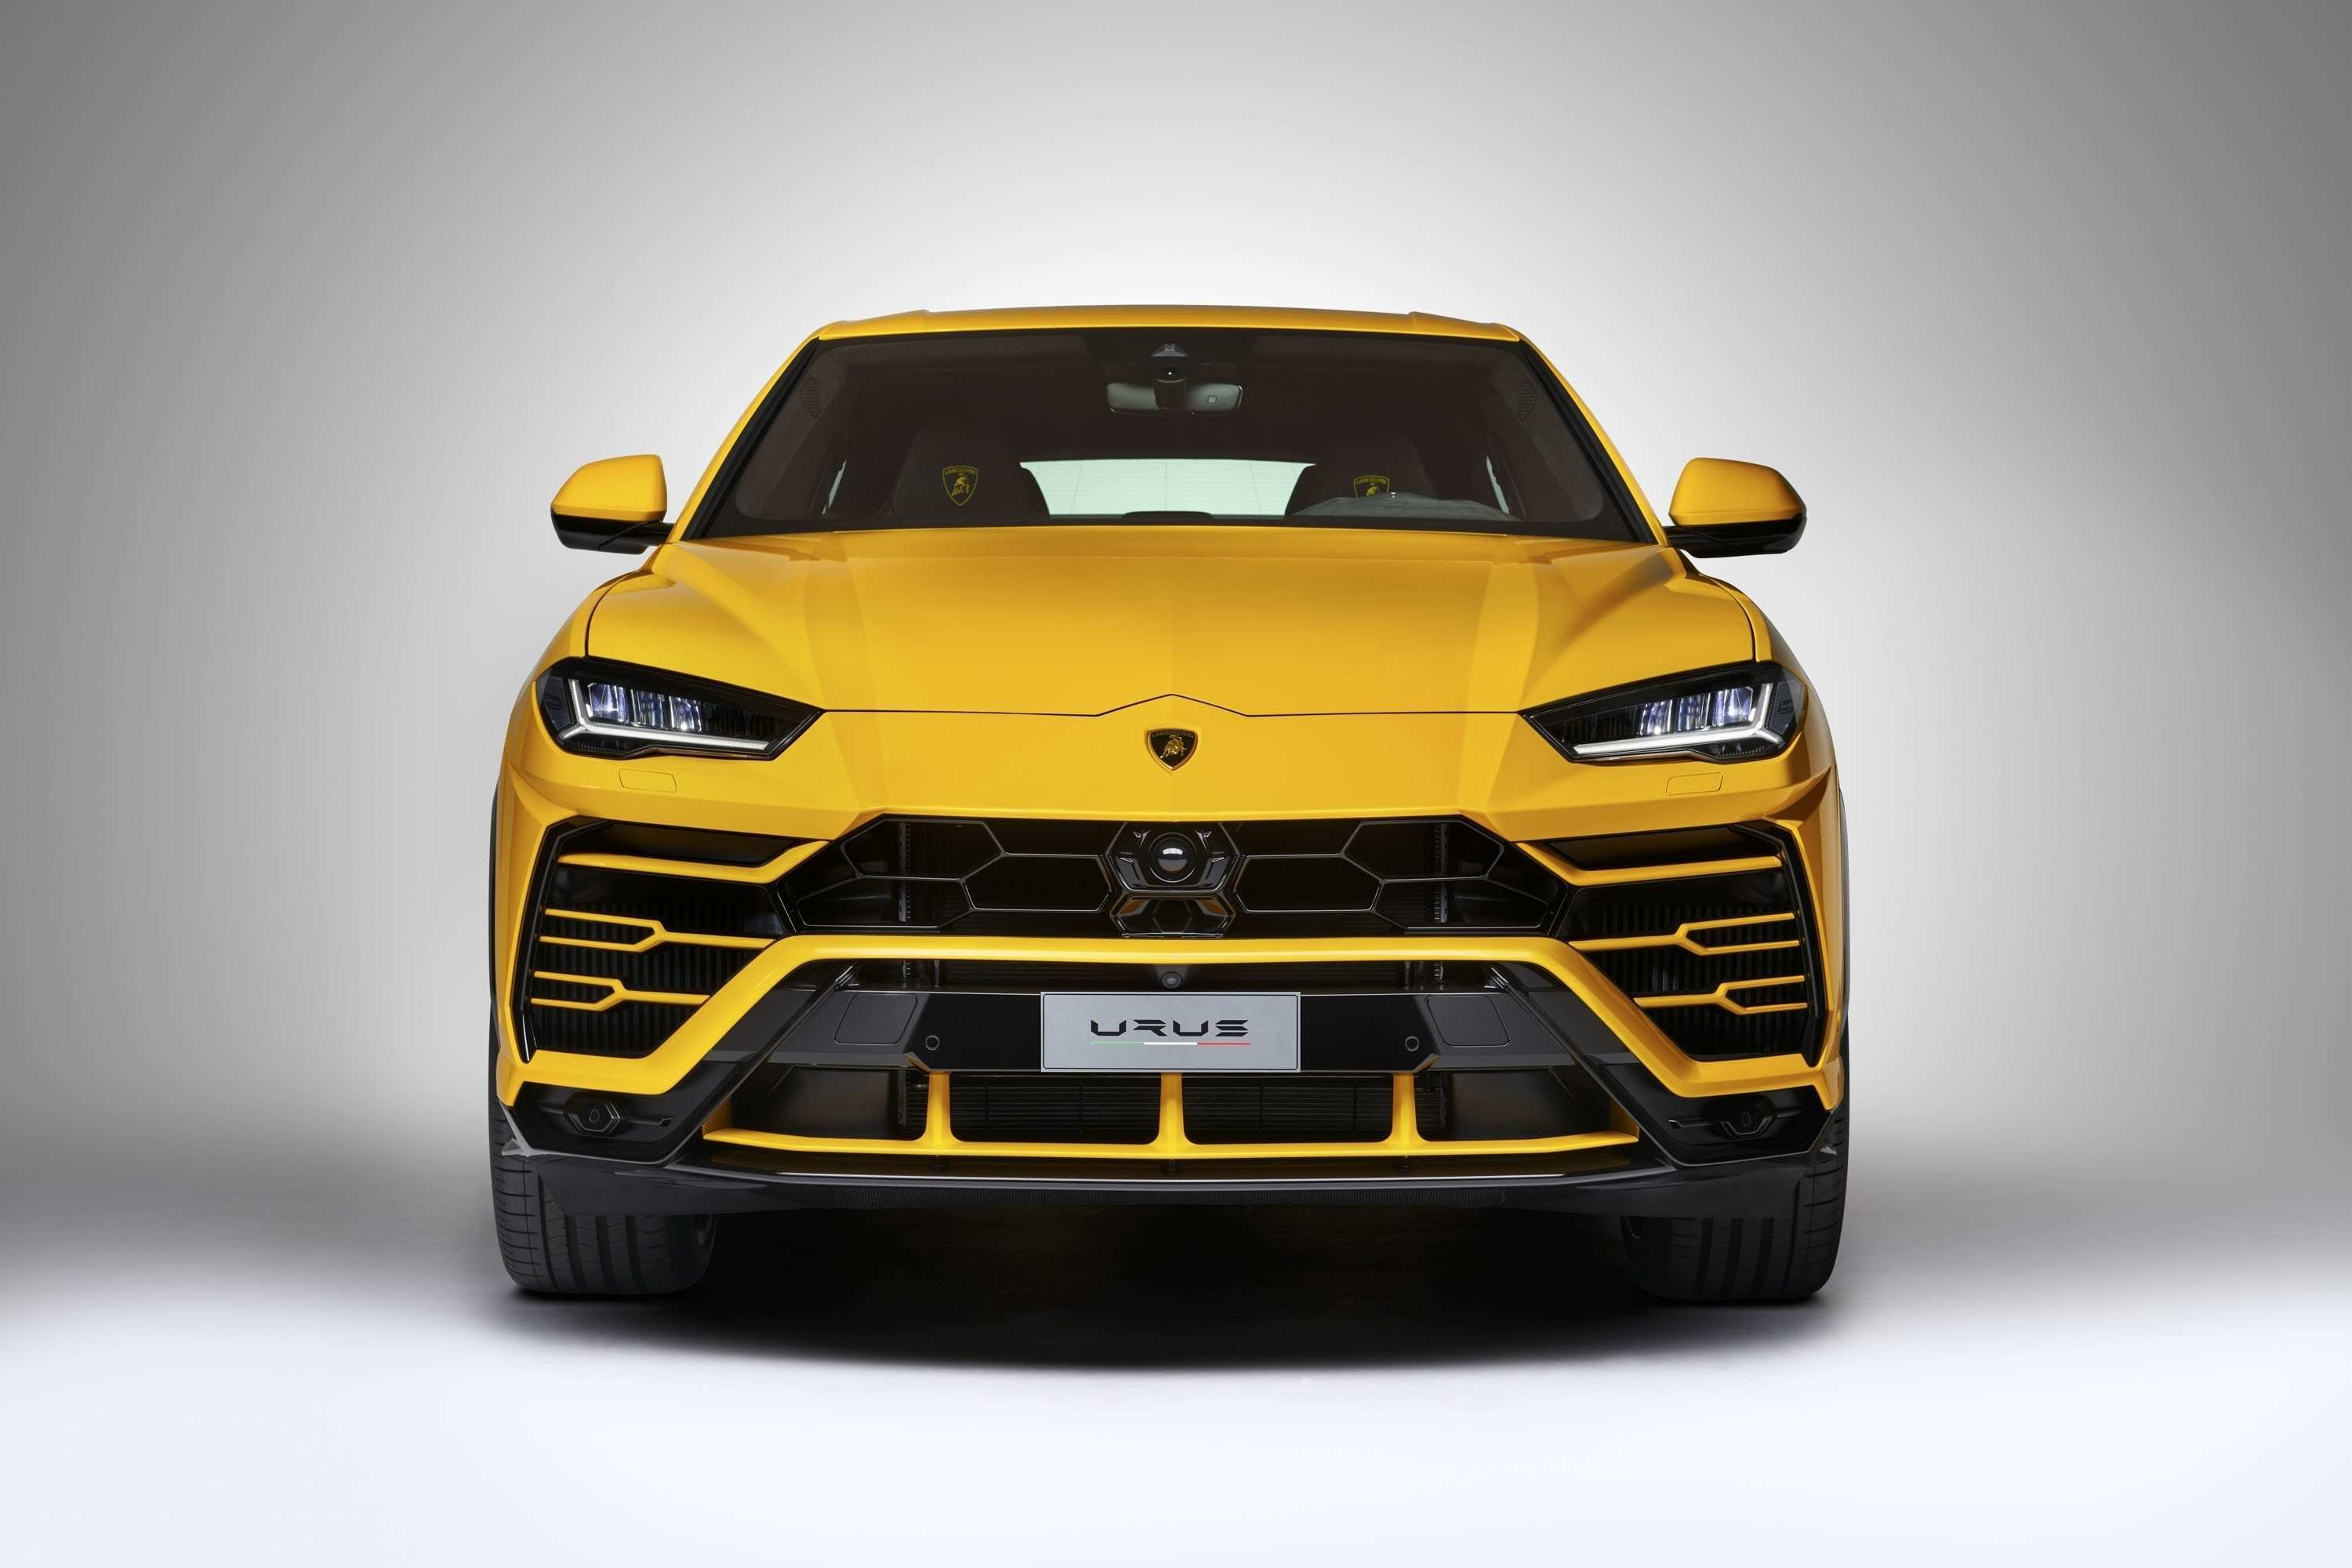 46 All New 2020 Lamborghini Urus Release